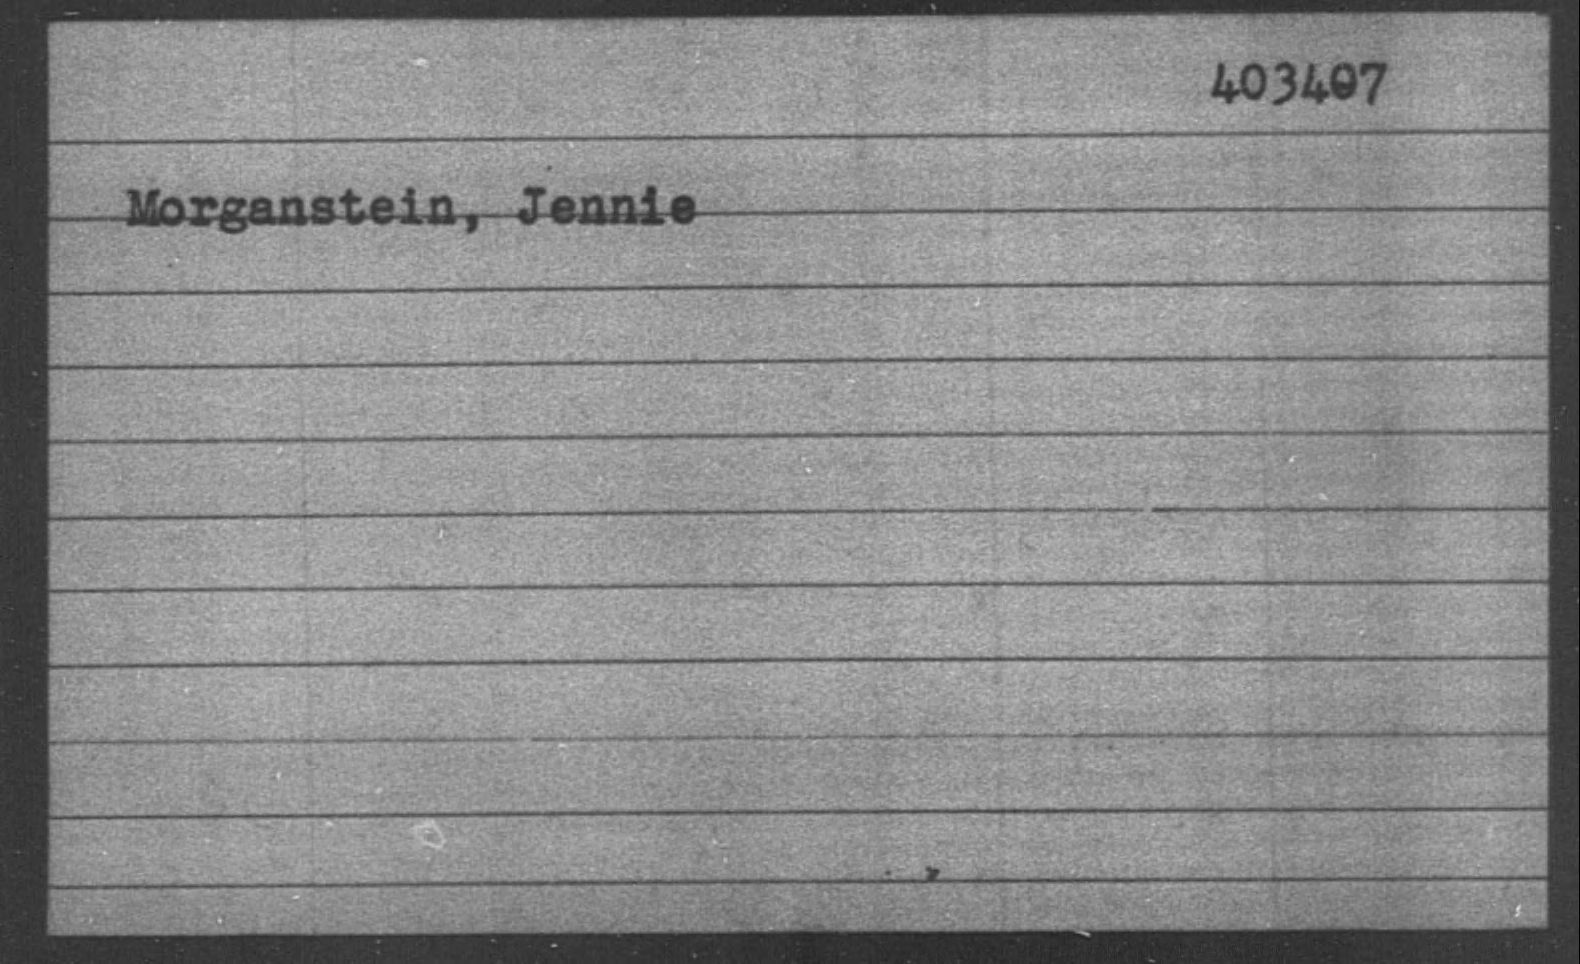 Morganstein, Jennie